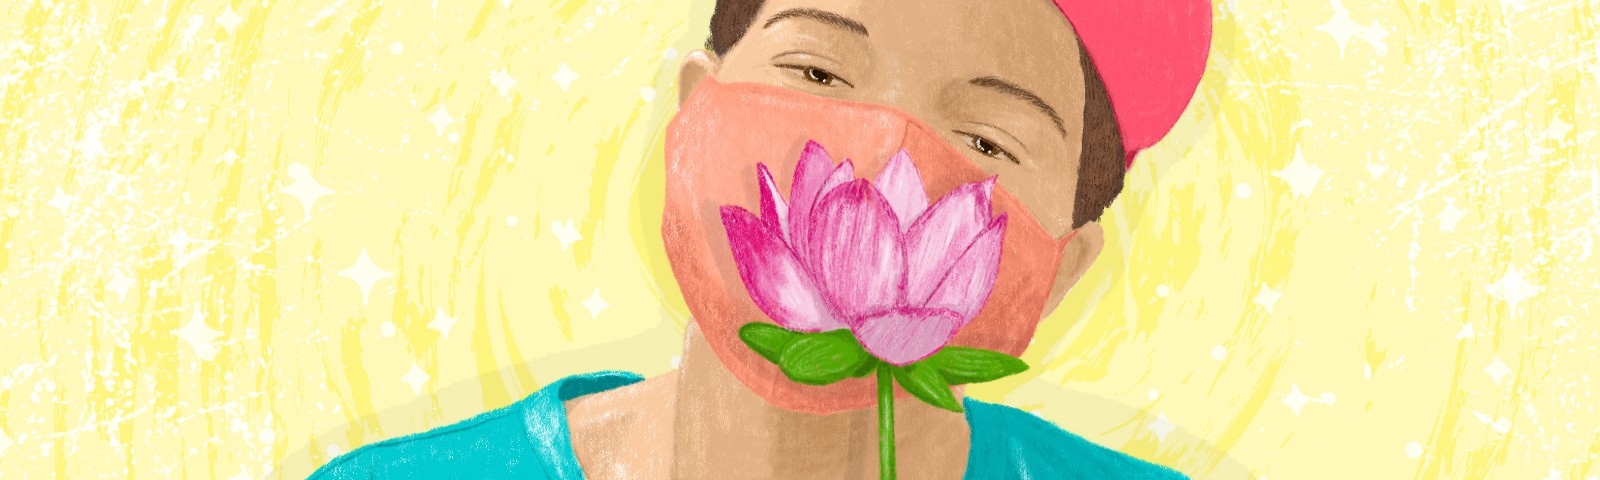 A short-haired person with light brown skin wearing a pink baseball cap, a light teal shirt, and a sherbet-orange face mask, holds a lotus flower in front of their lower face.